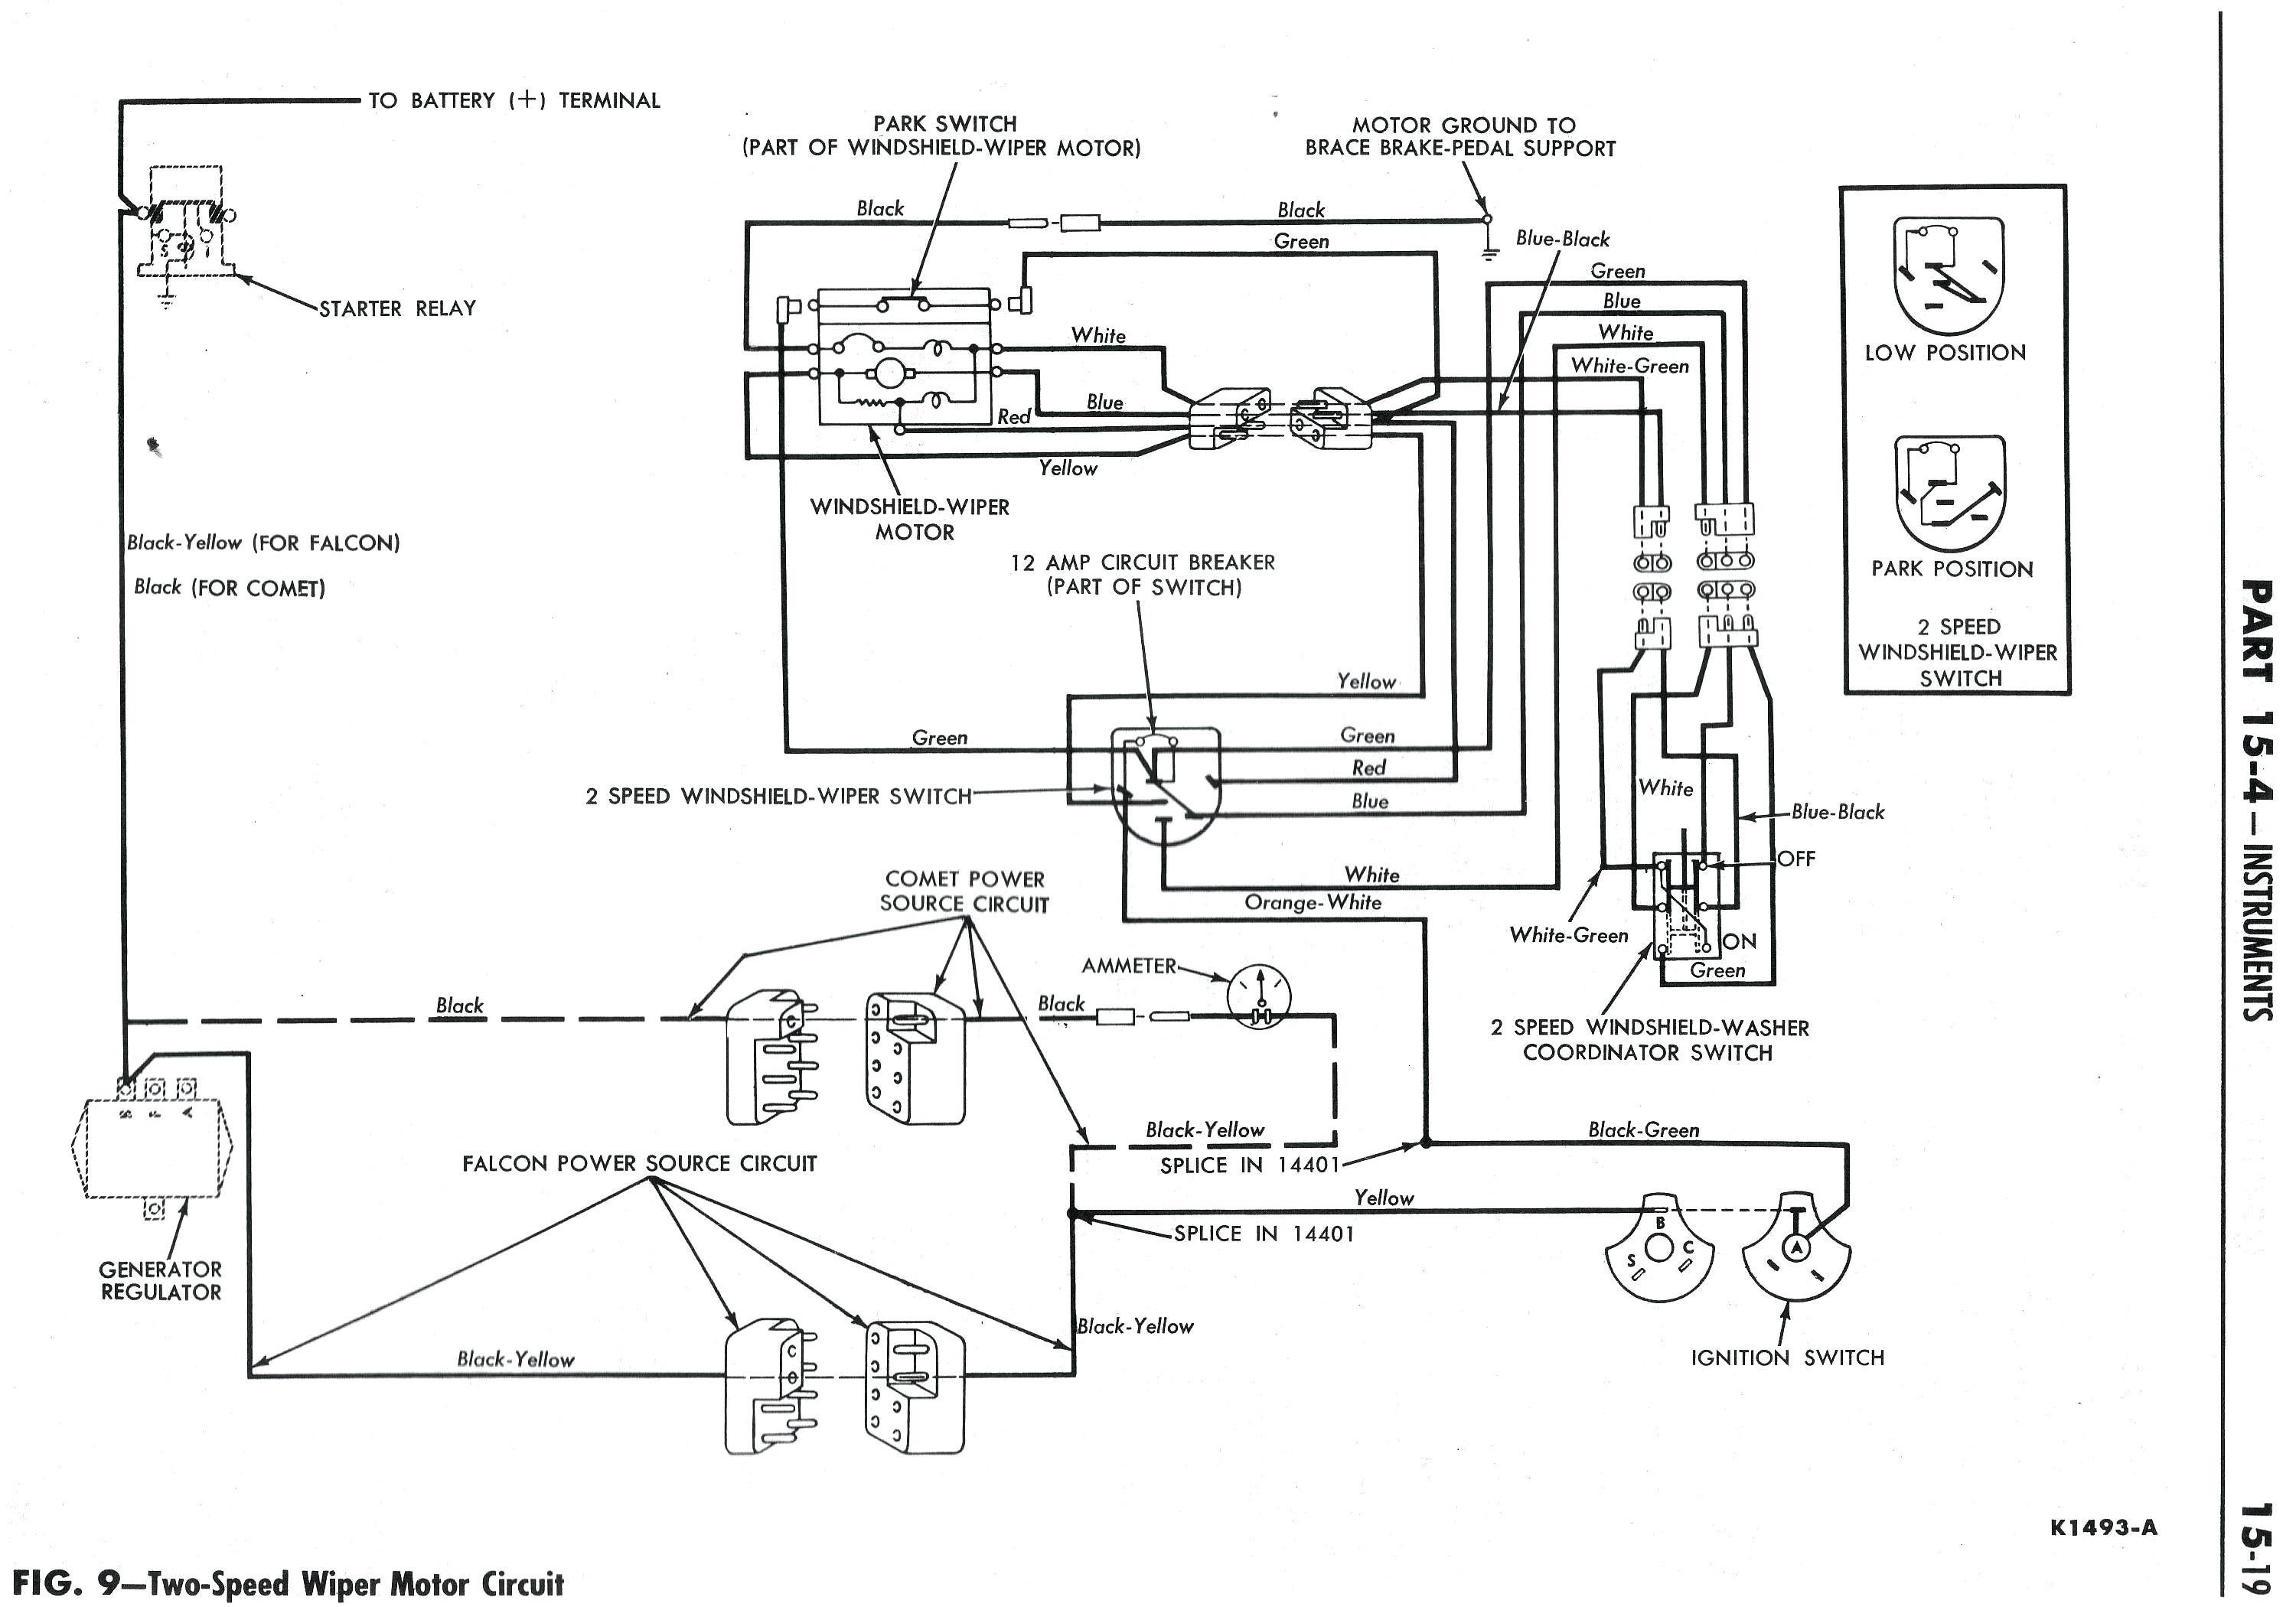 WRG-8908] Infiniti M37 Wiring Diagram Bose on